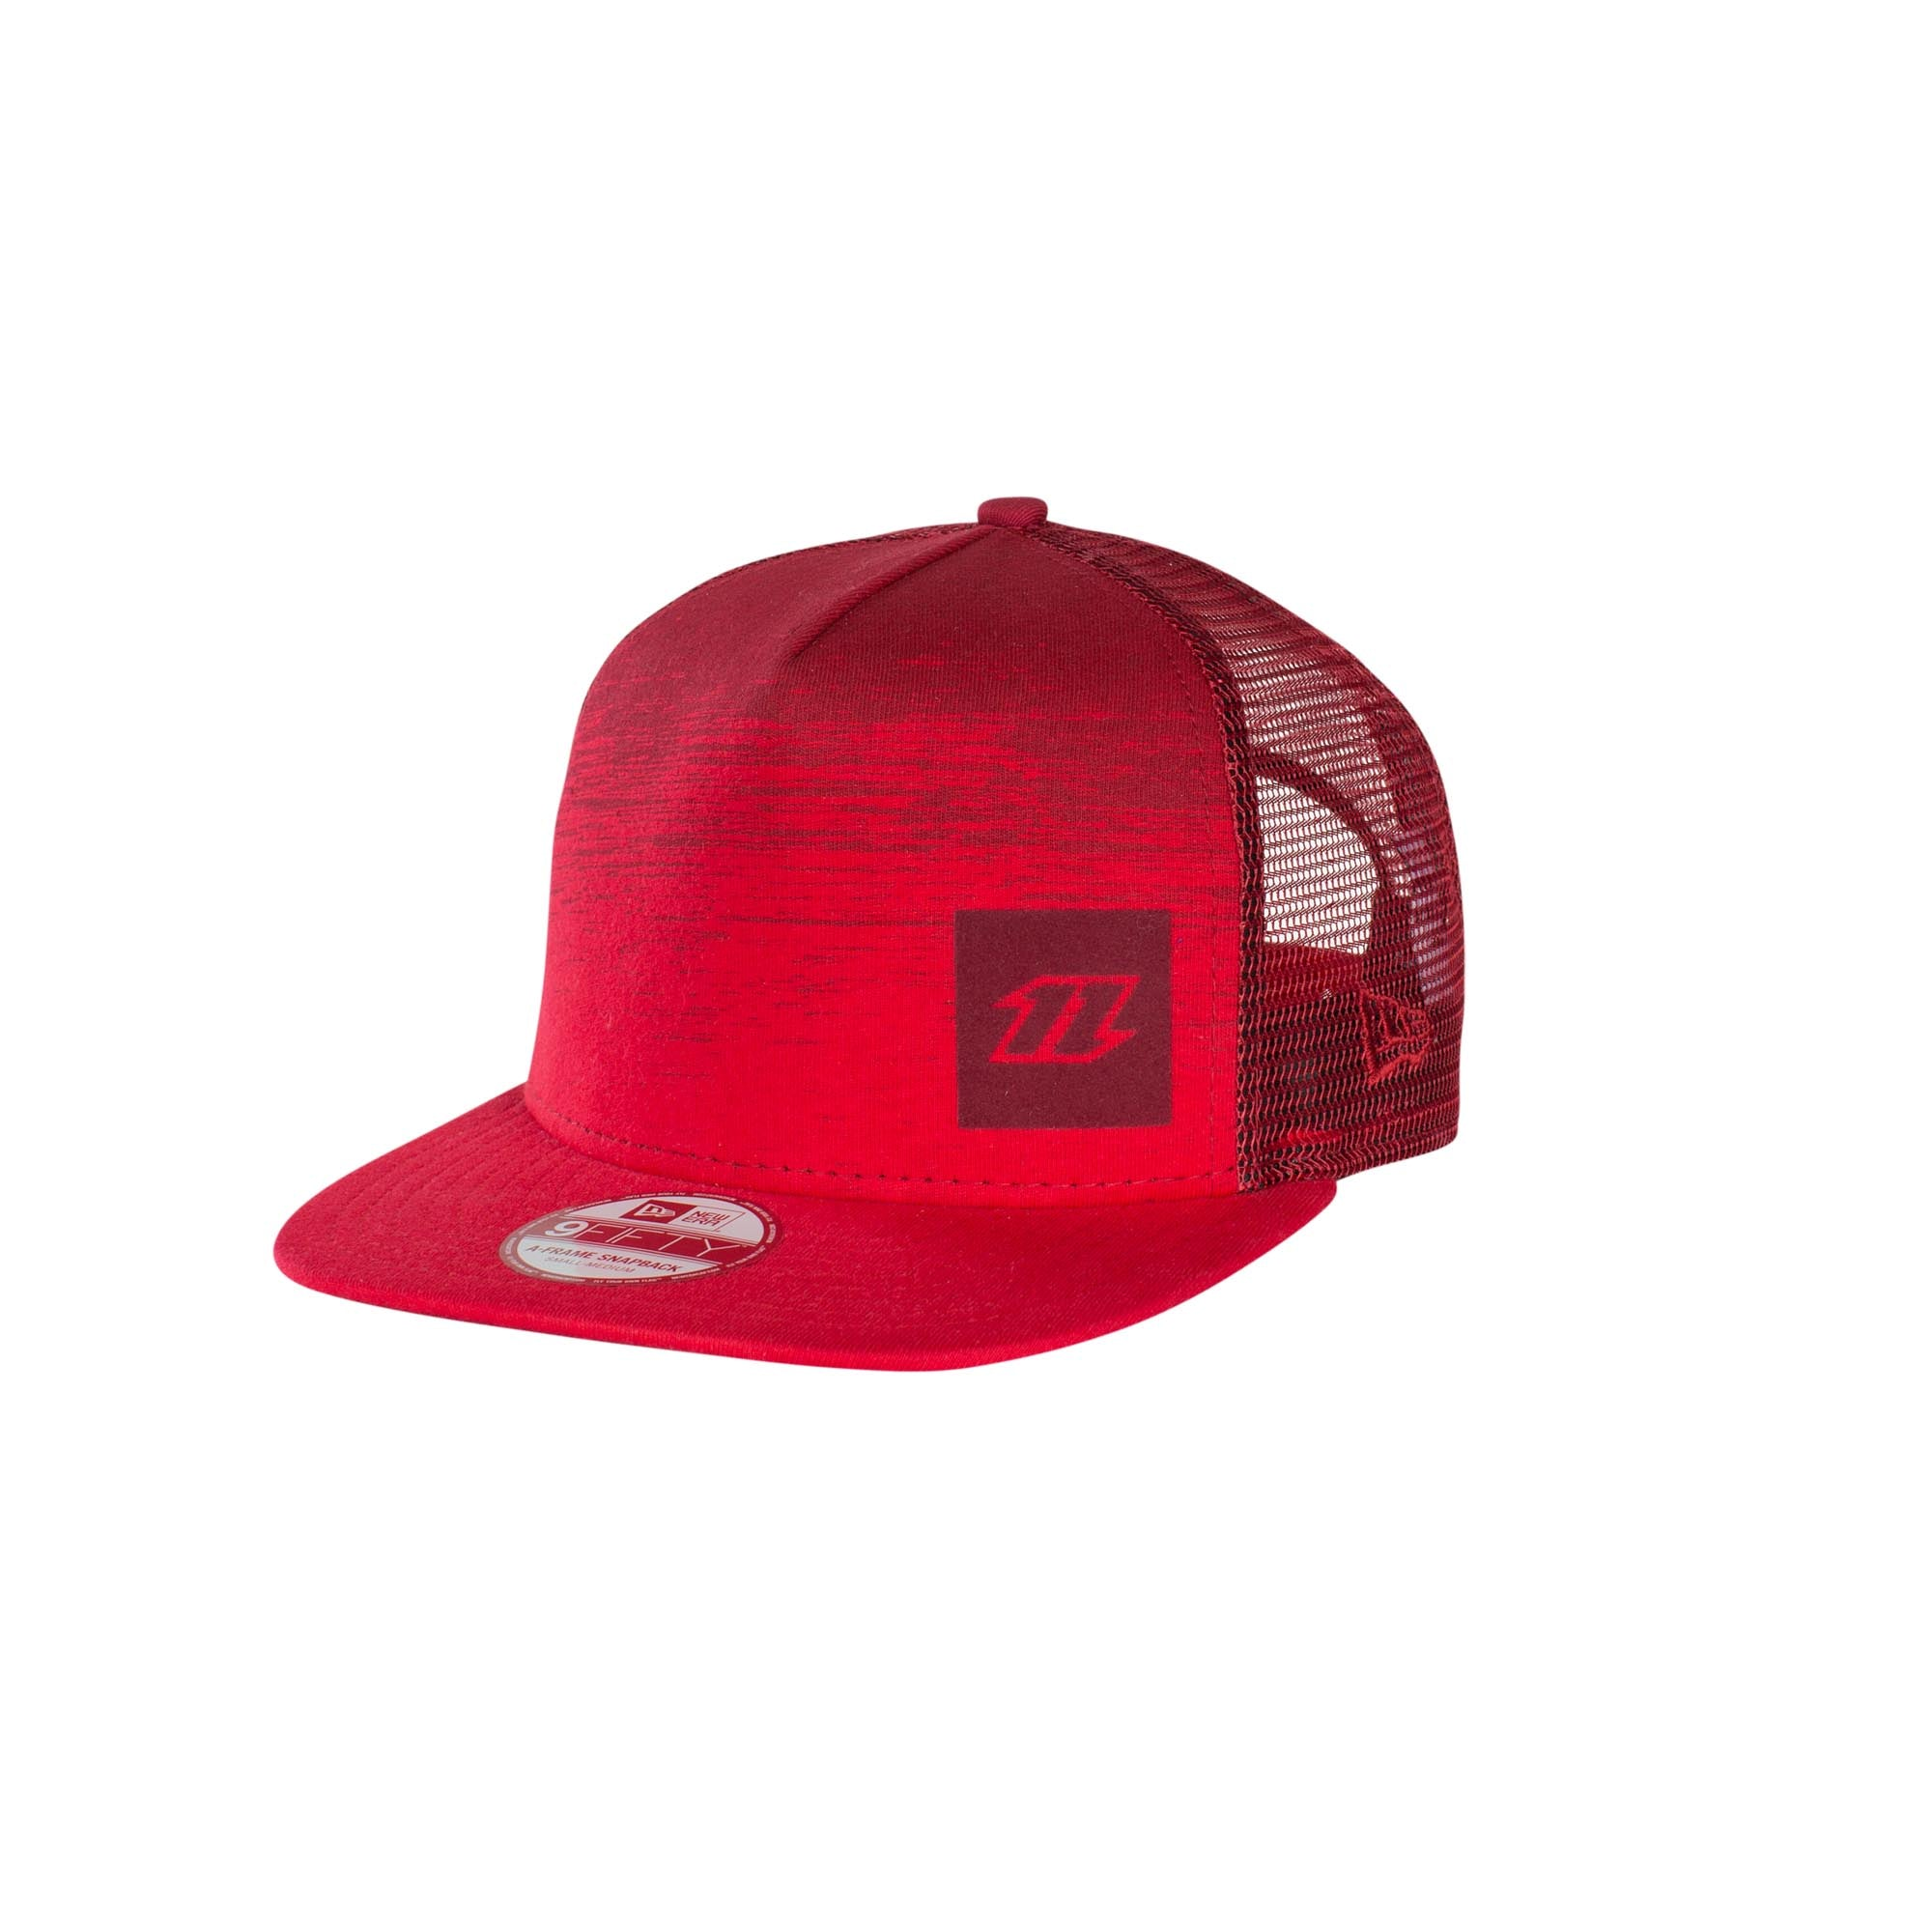 NEW NERA CAP 9 FIFTY FADE